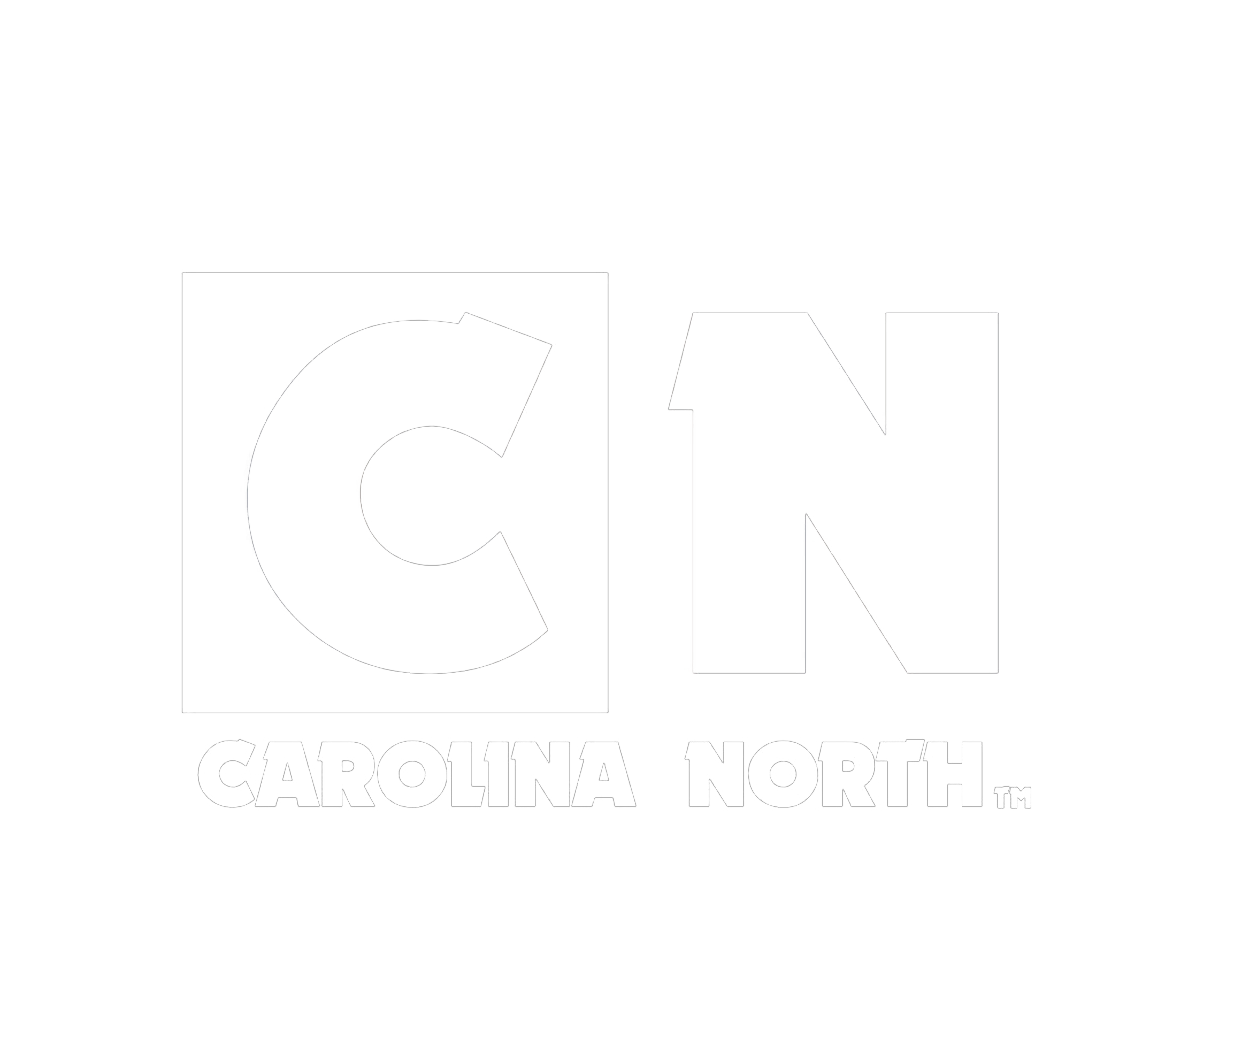 Carolina North